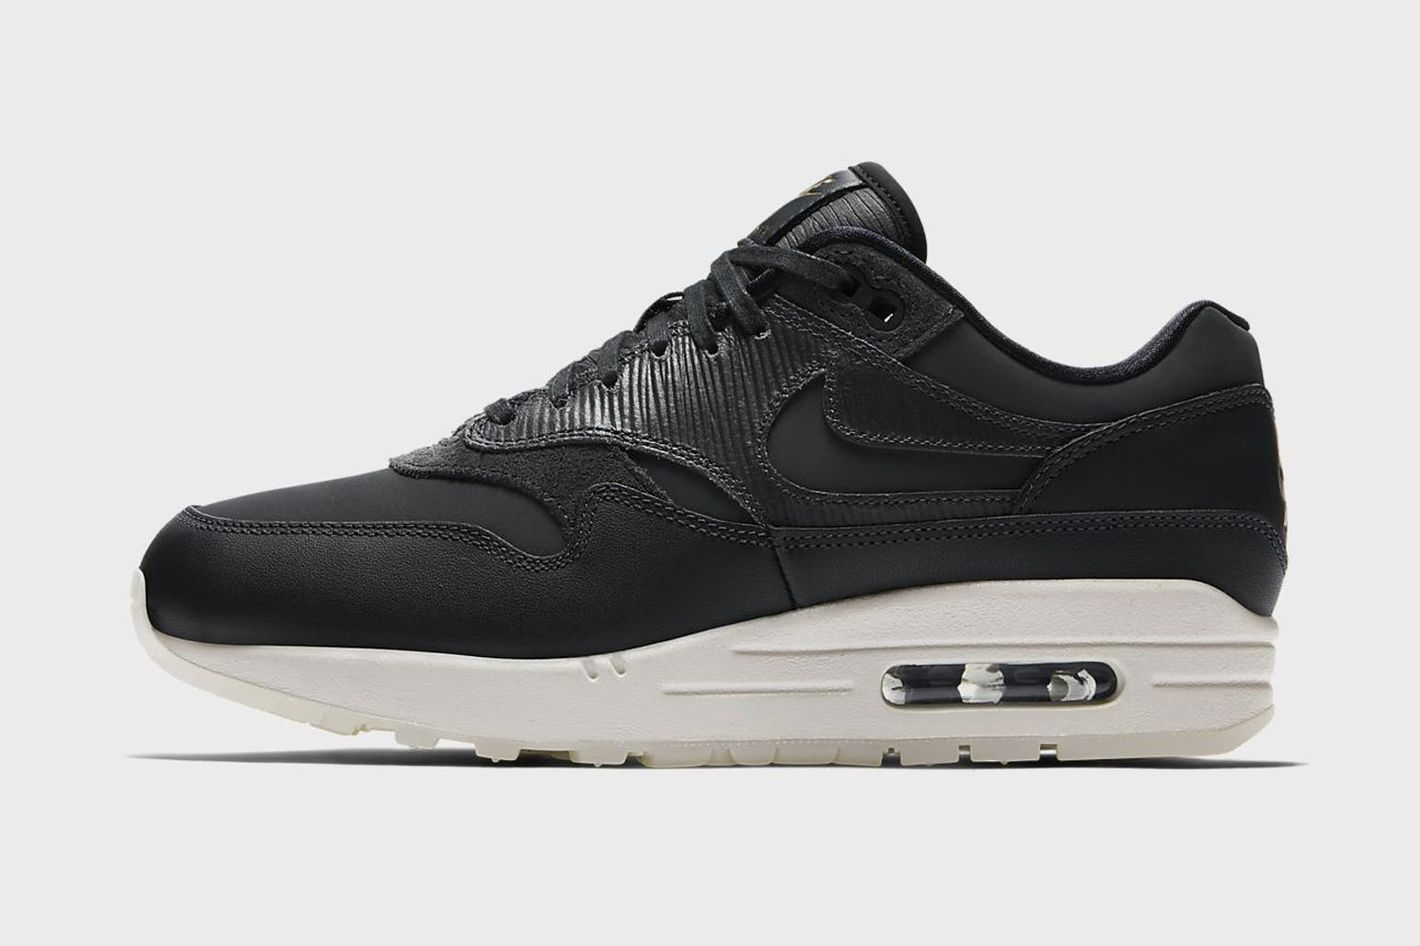 half off a4ab3 3f73a Nike Air Max 1 Premium Women s Shoe